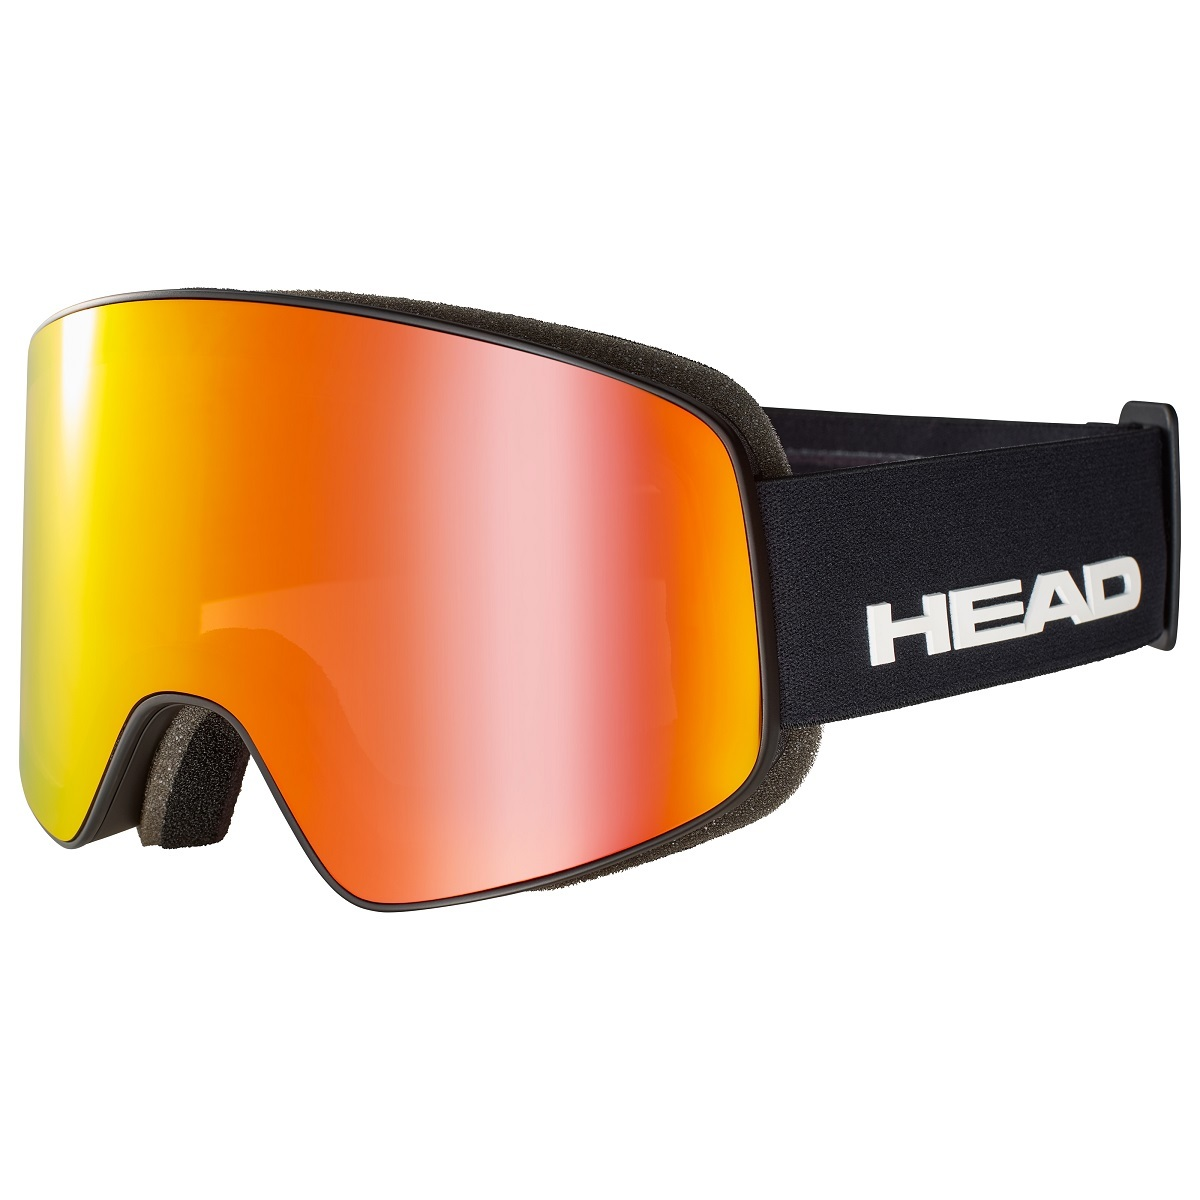 Head Horizon FMR